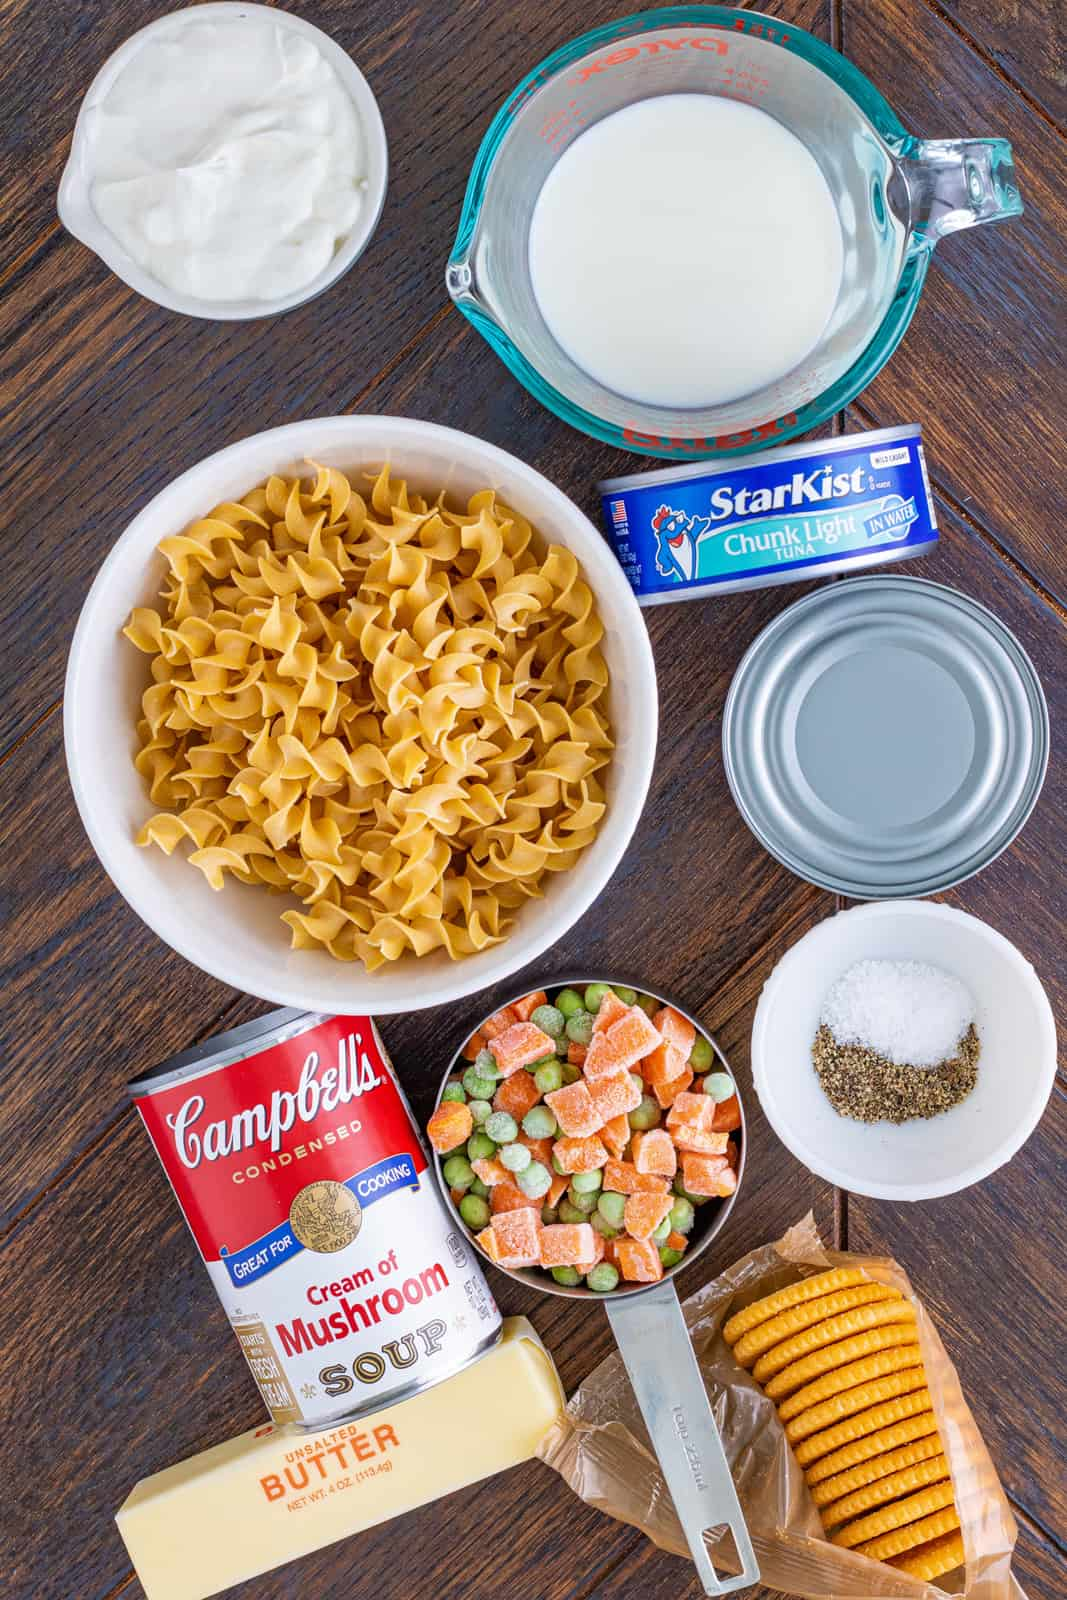 Ingredients needed to make Tuna Noodle Casserole.